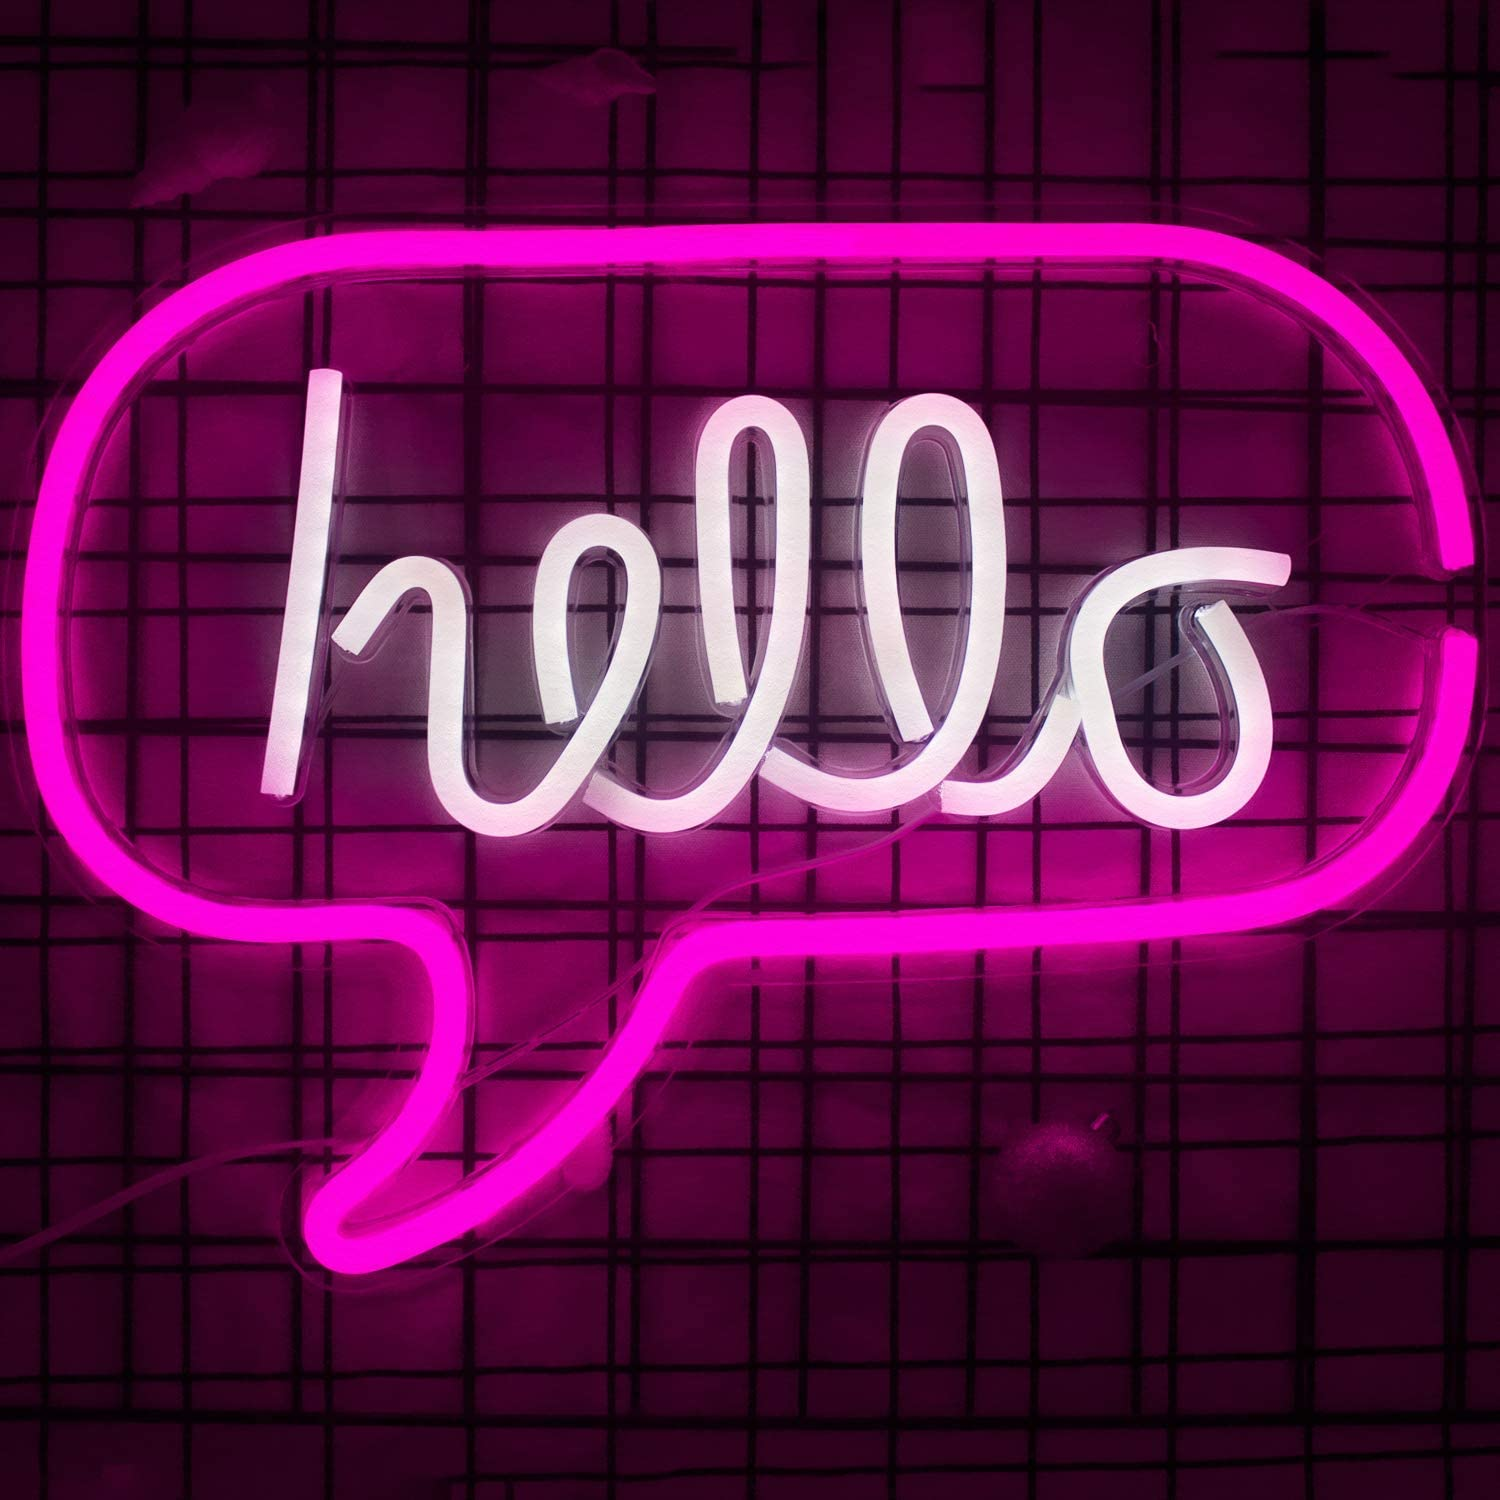 Hello Led Light Neon Word Sign Neon Word Letters Light Kids Room Decor Wall Decor For Baby Room Birthday Party Living Room Wedding Party Supplies 16 9 X12 6 Pink White Hello Amazon Co Uk Lighting